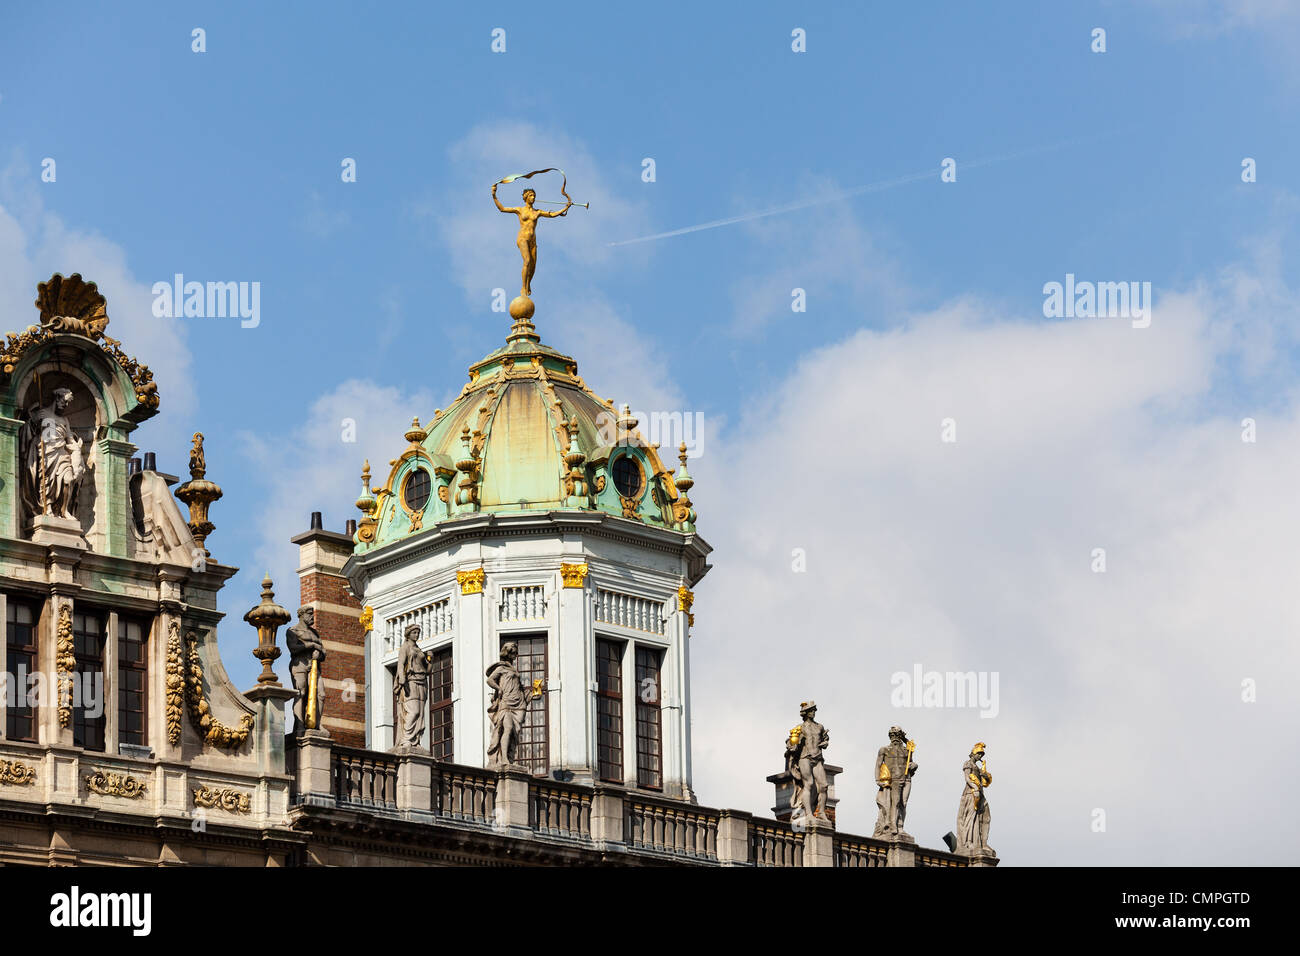 Detail of roof and gold statues on roof of Maison du Roi d'Espagne in Grand Place Brussels - Stock Image